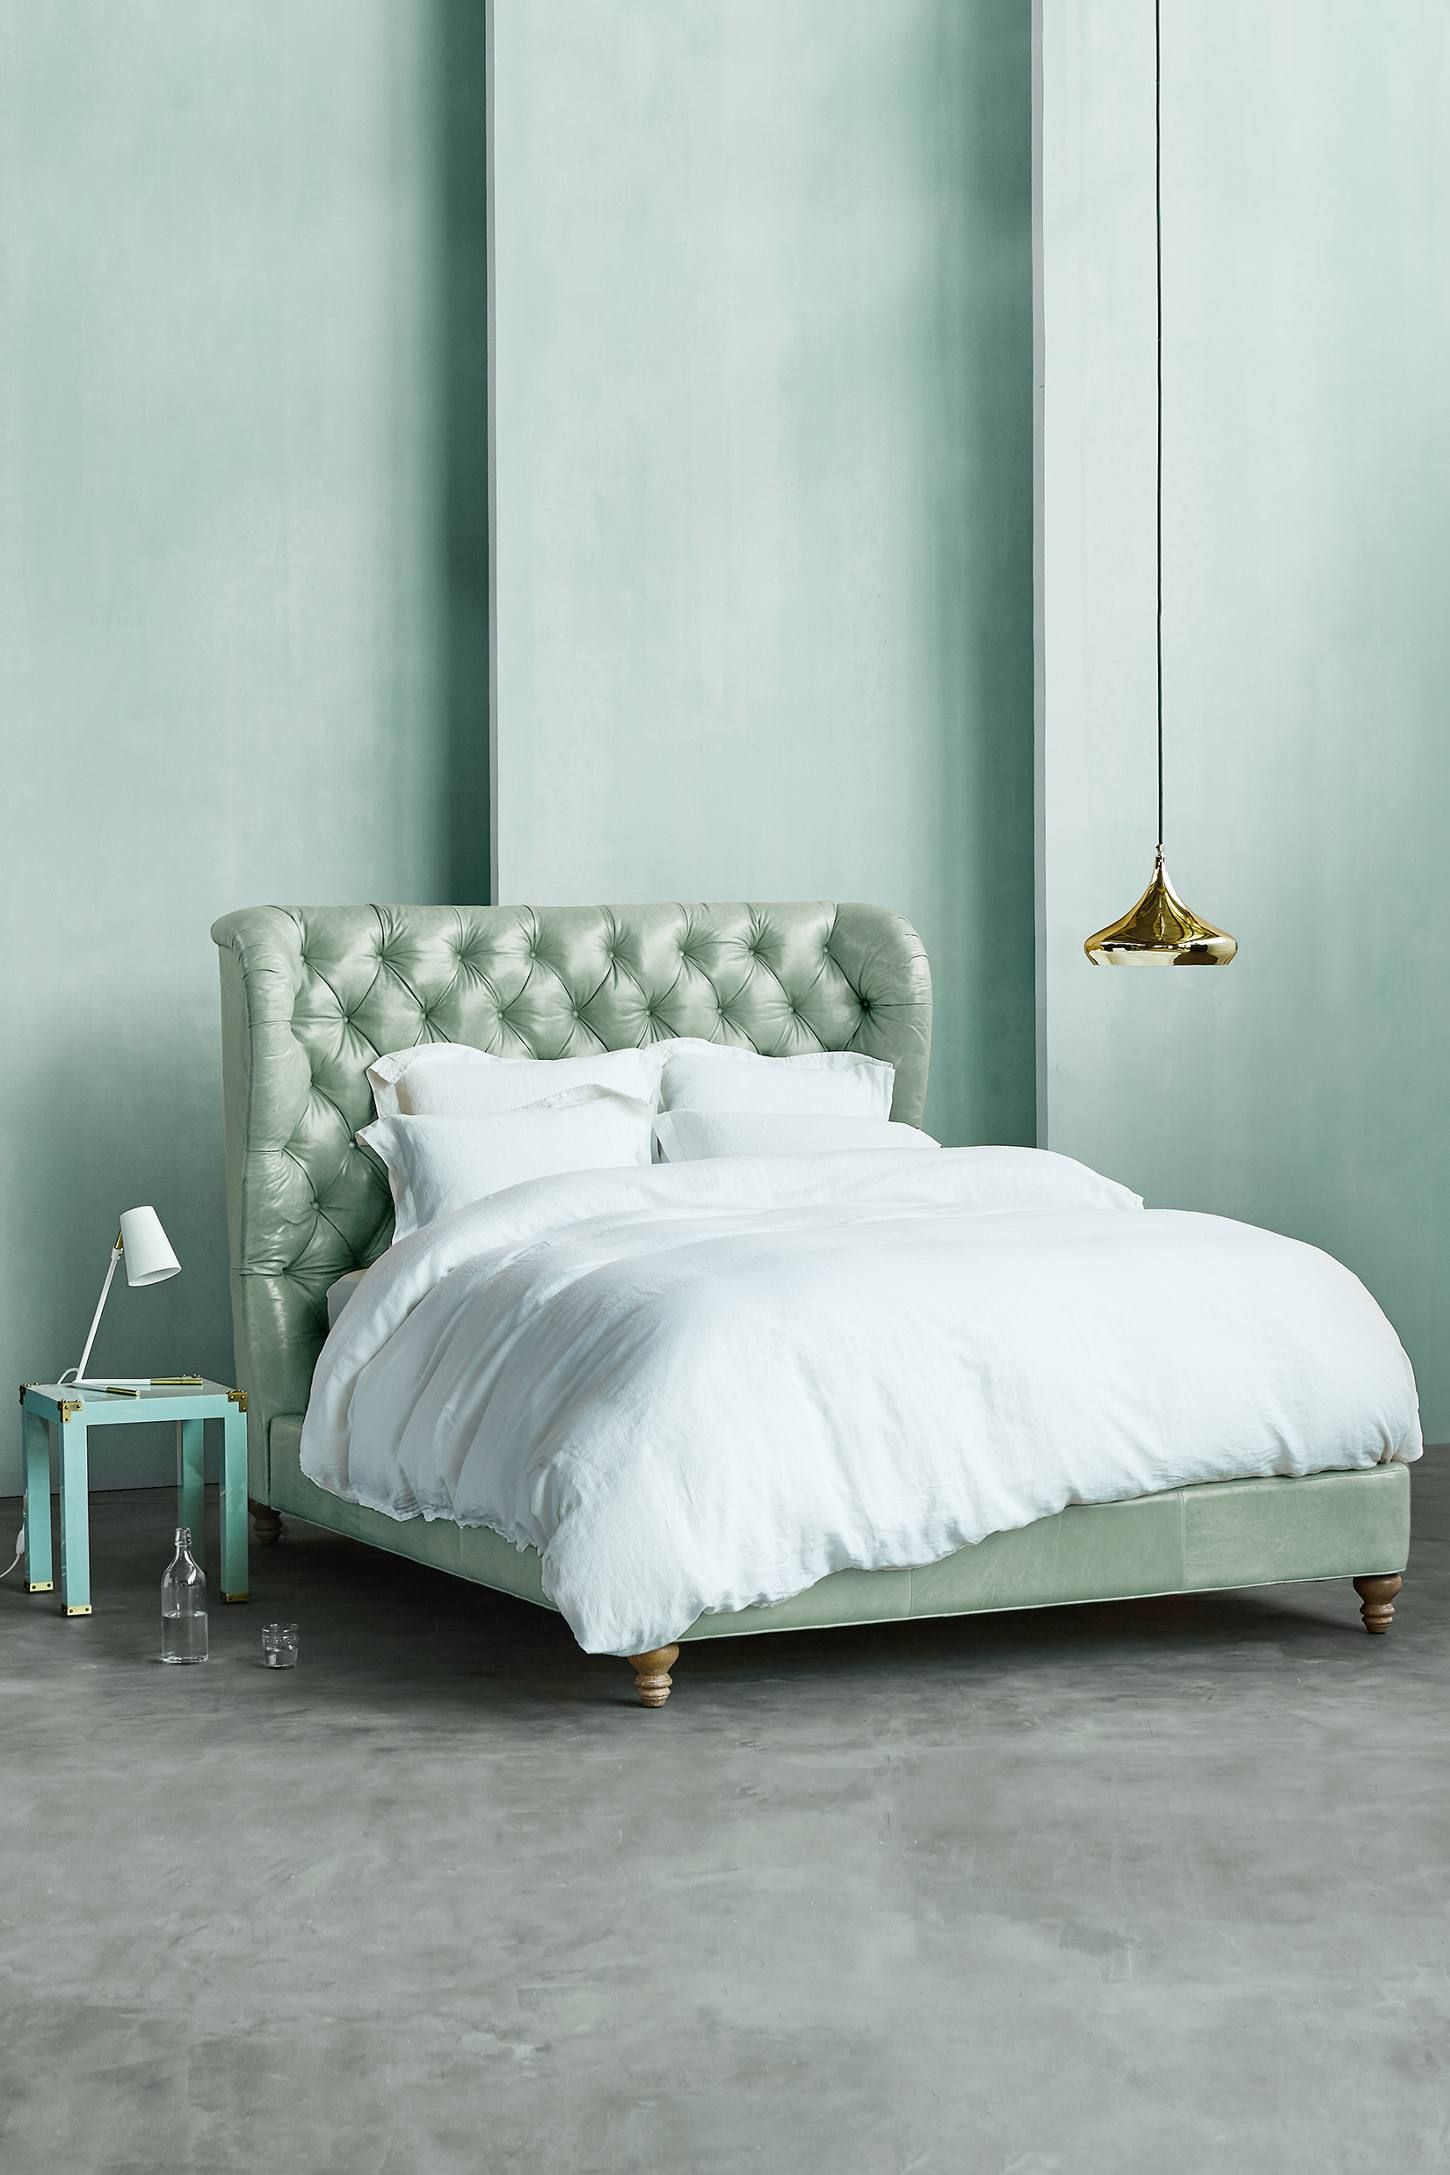 shop the premium leather tufted wingback bed and more anthropologie atanthropologie today read customer. shop the premium leather tufted wingback bed and more